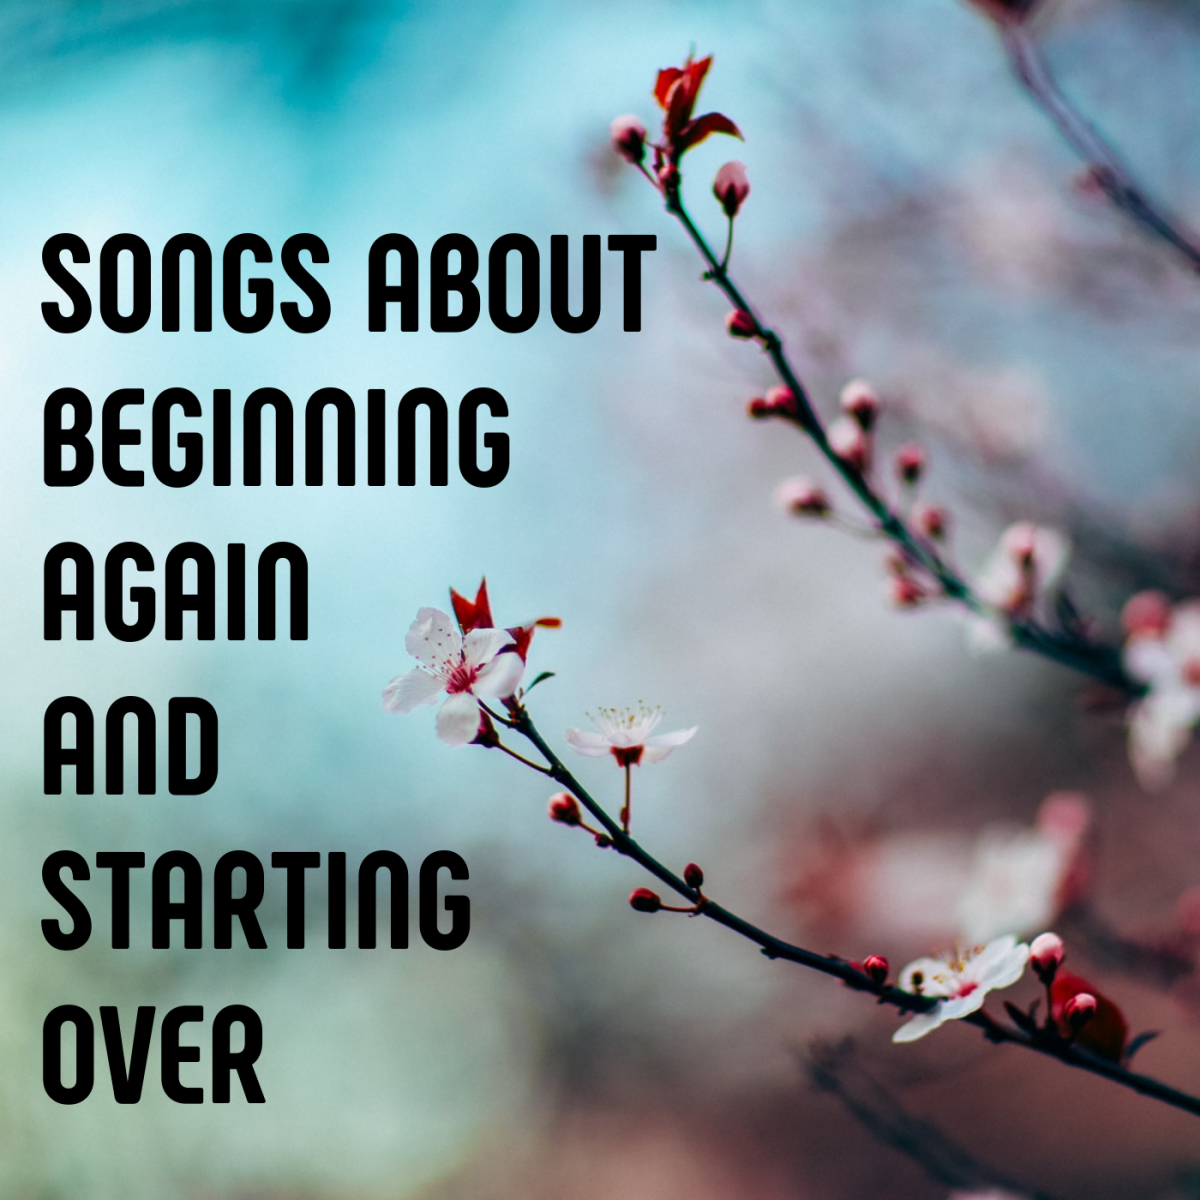 Celebrate being able to start fresh, begin again, or press restart with these pop, rock, country, and R&B songs about starting over.